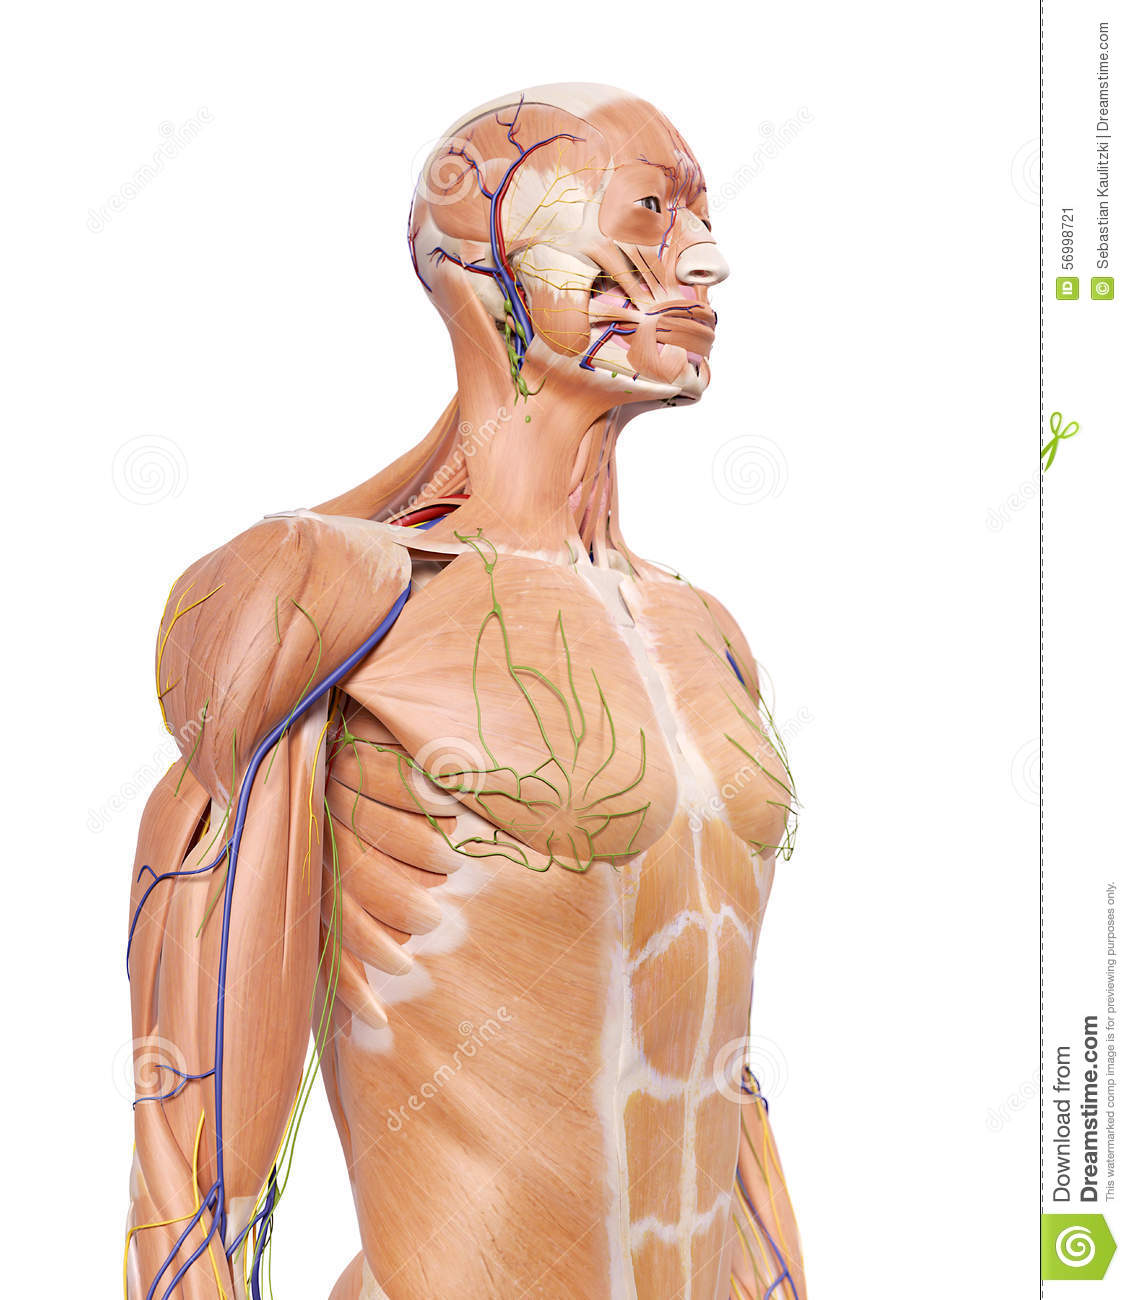 The upper body anatomy stock illustration. Illustration of white ...